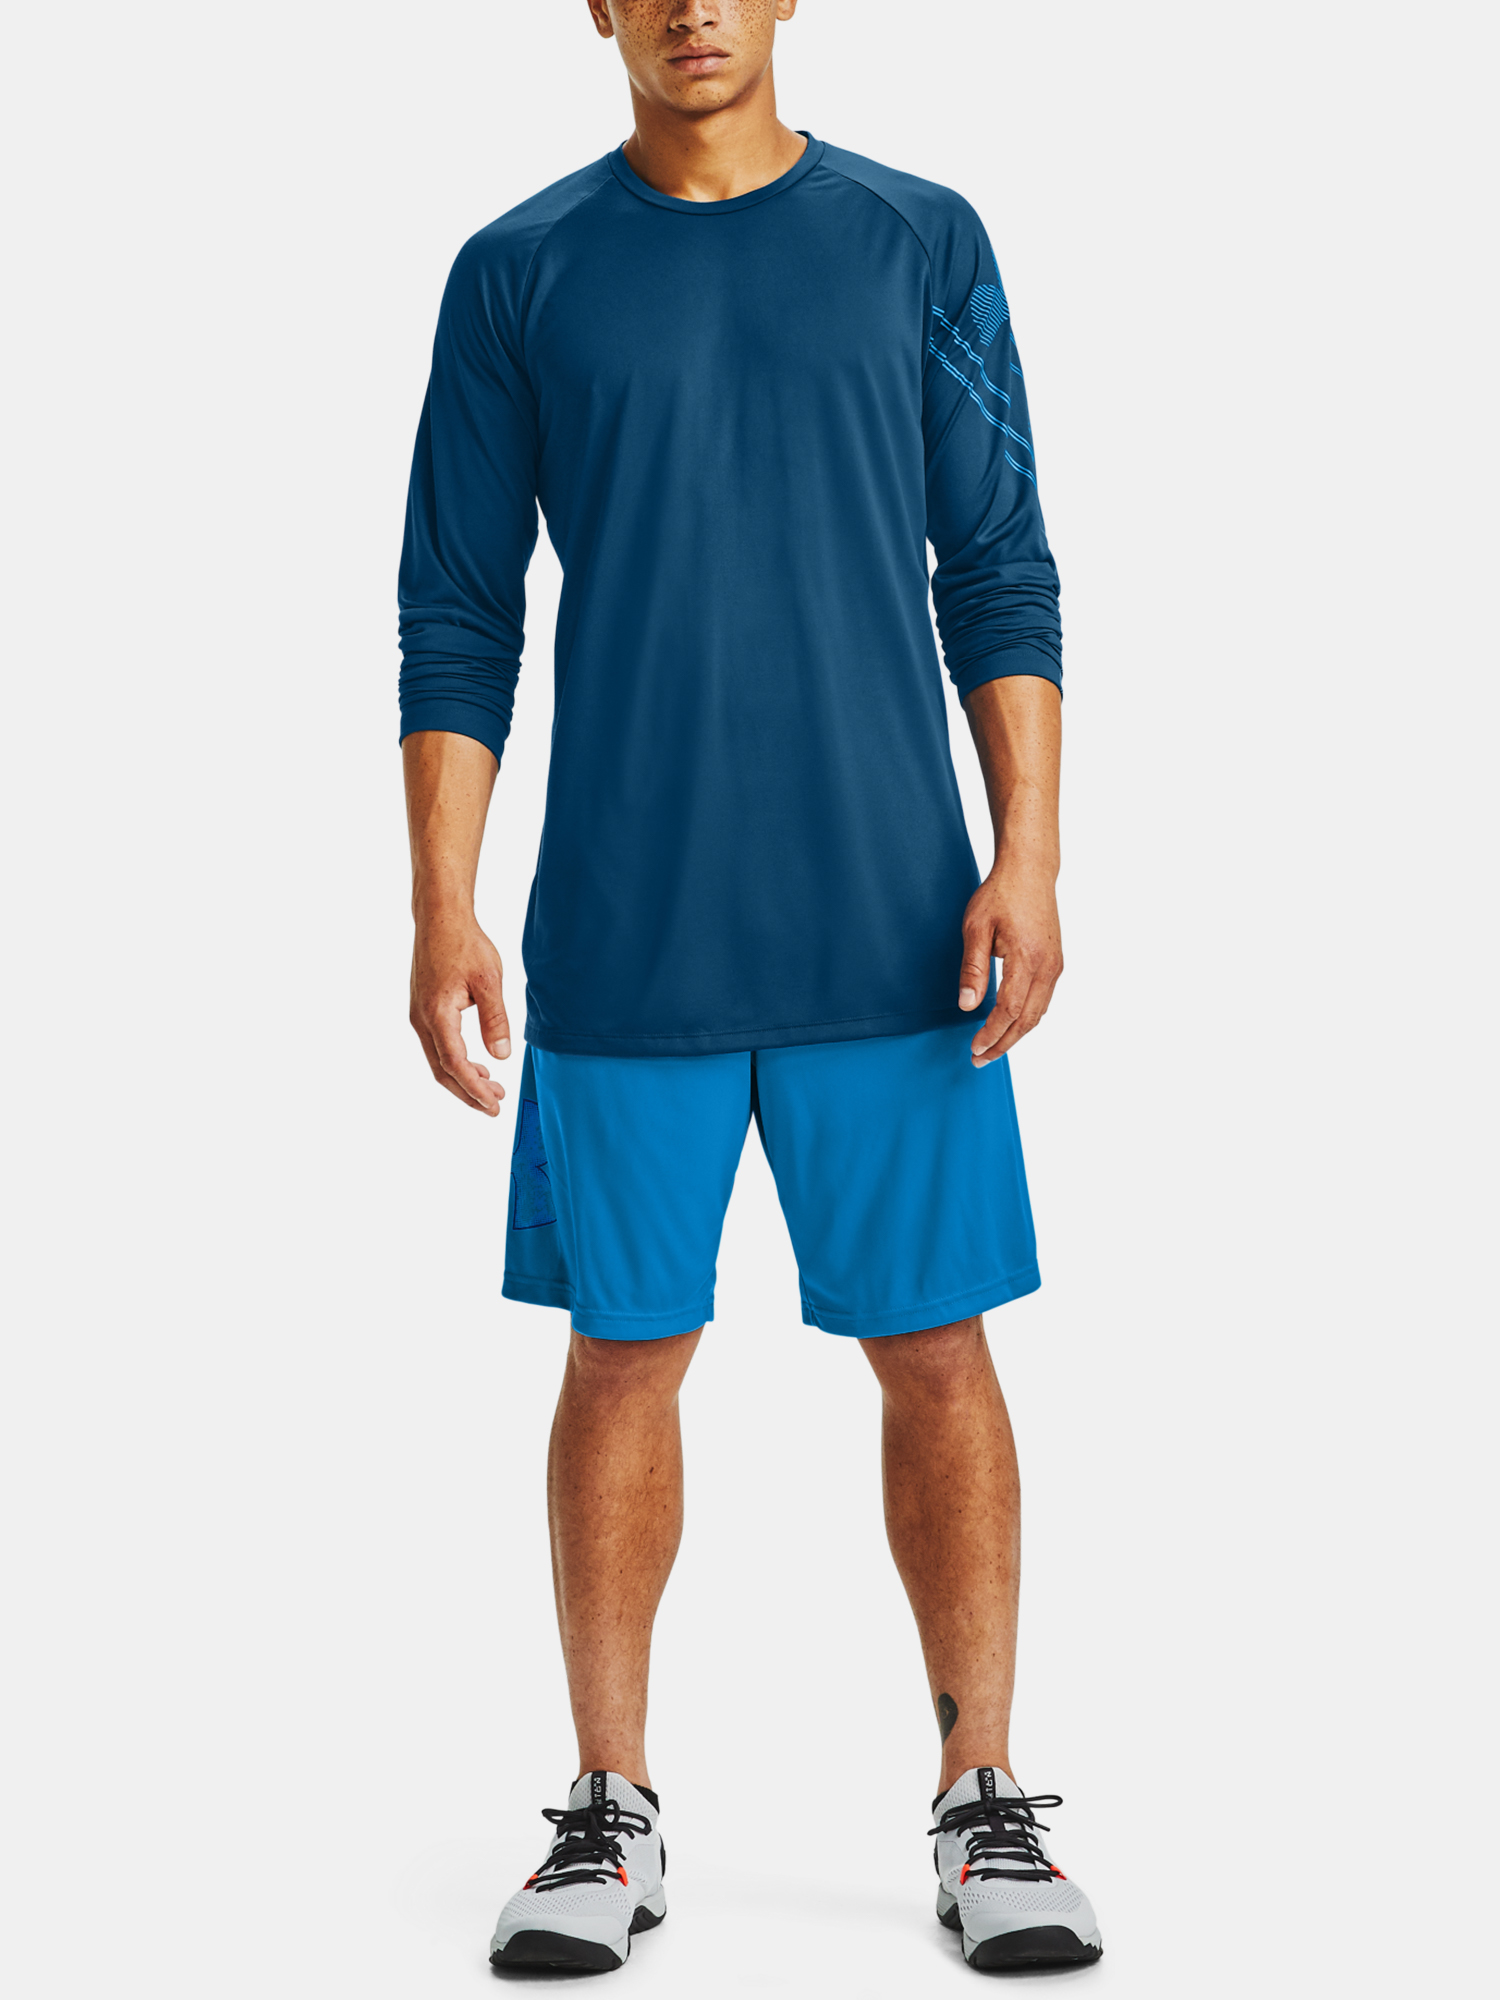 Tričko Under Armour GRADIENT LOGO TECH LS-BLU (7)